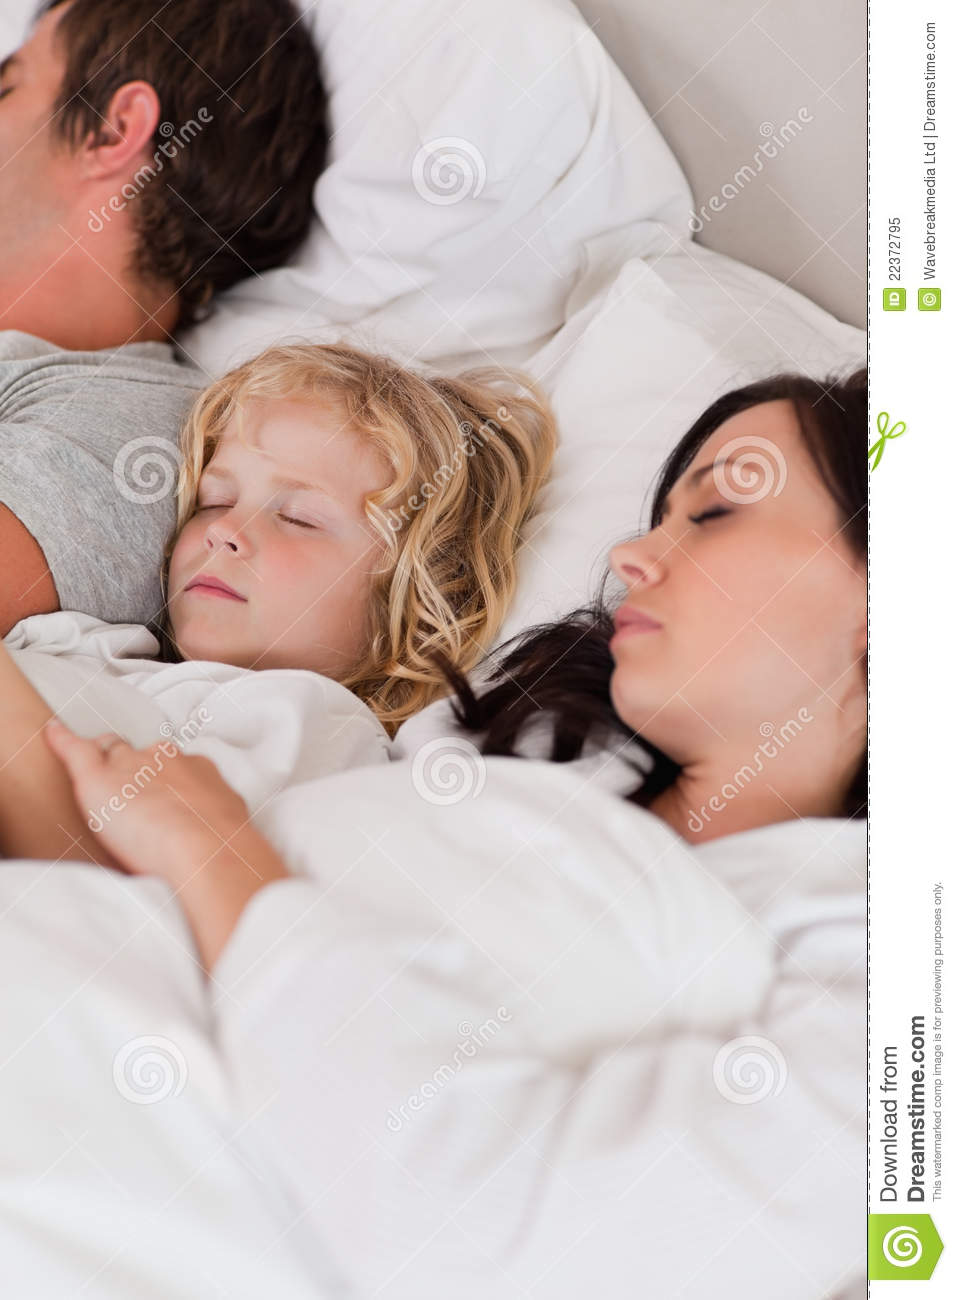 Baby Sleeping In Bedroom With Parents: Portrait Of A Boy Sleeping Between His Parents Royalty